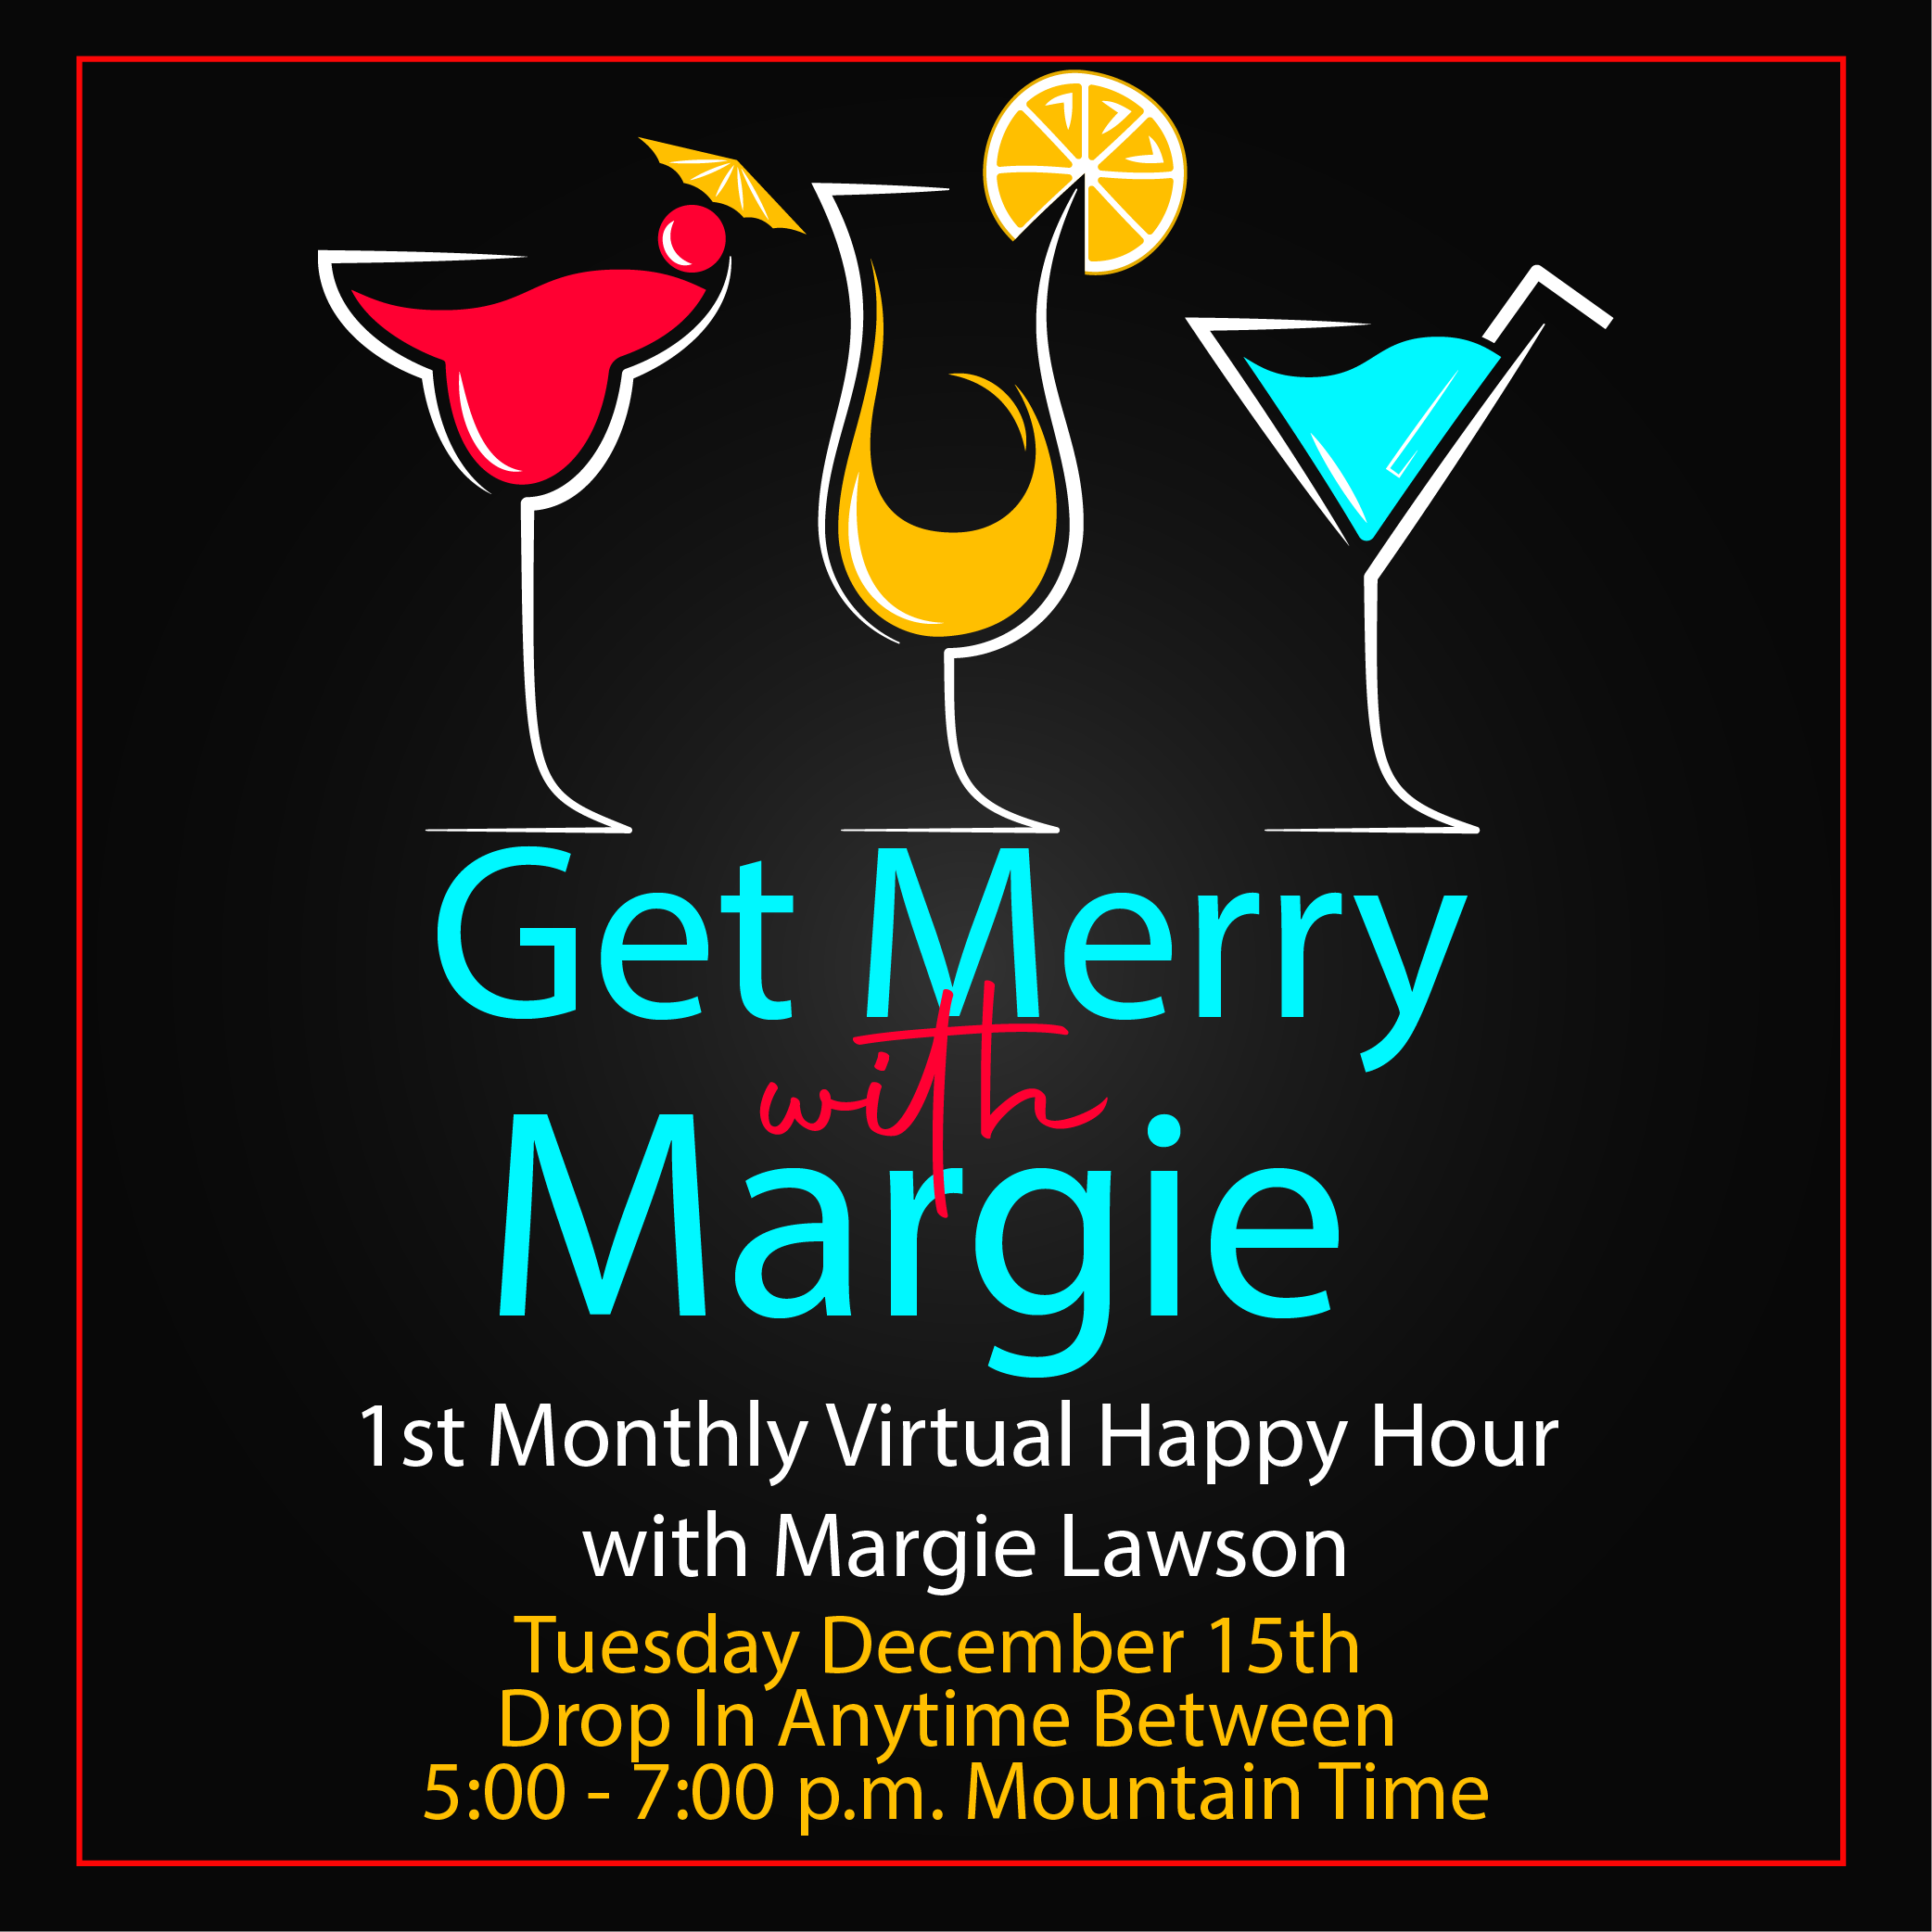 Make Merry with Margie